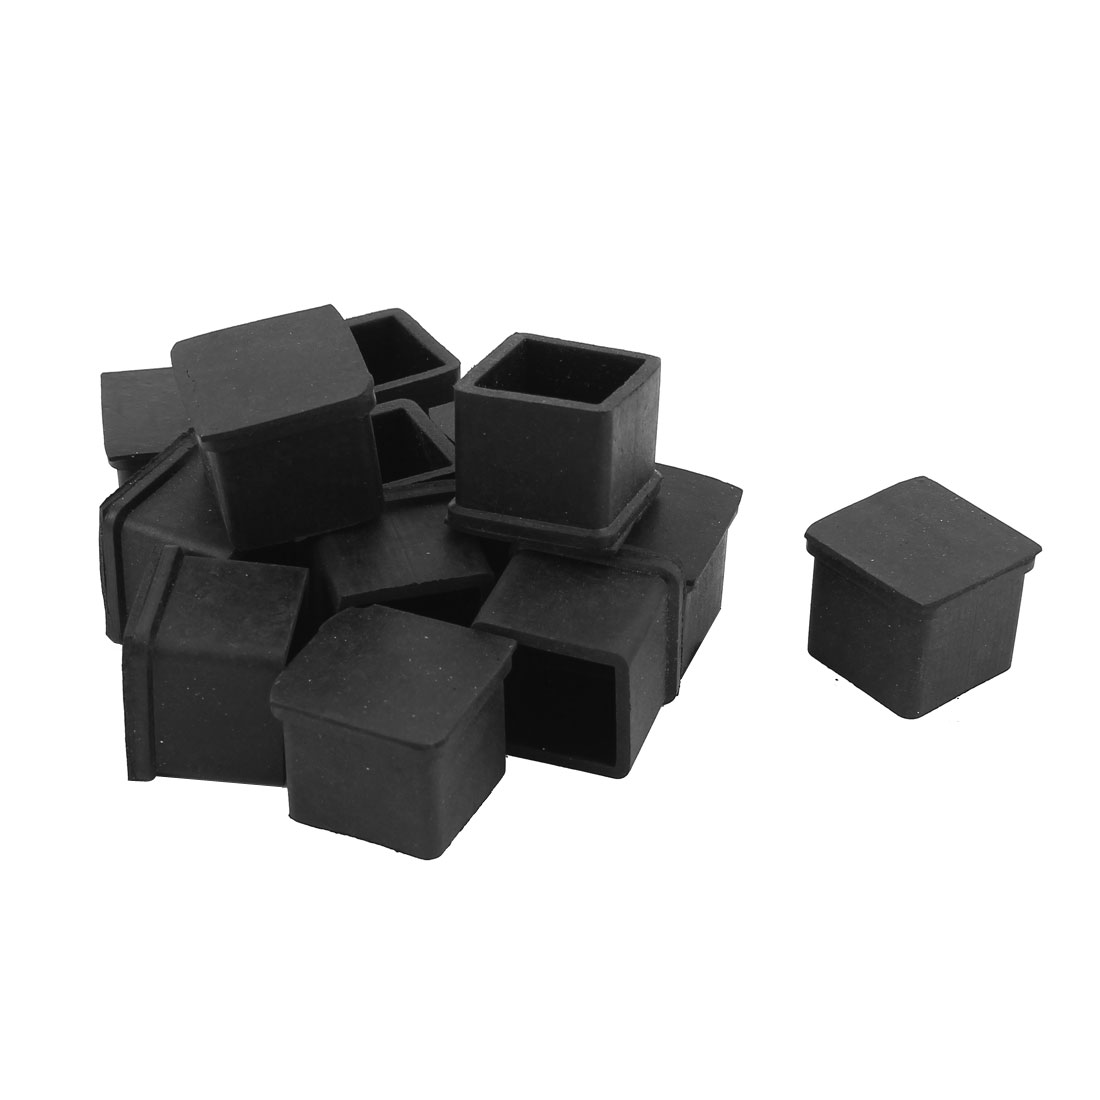 Rubber Furniture Chair Table Desk Leg Square Feet Cover Protector Black 13pcs